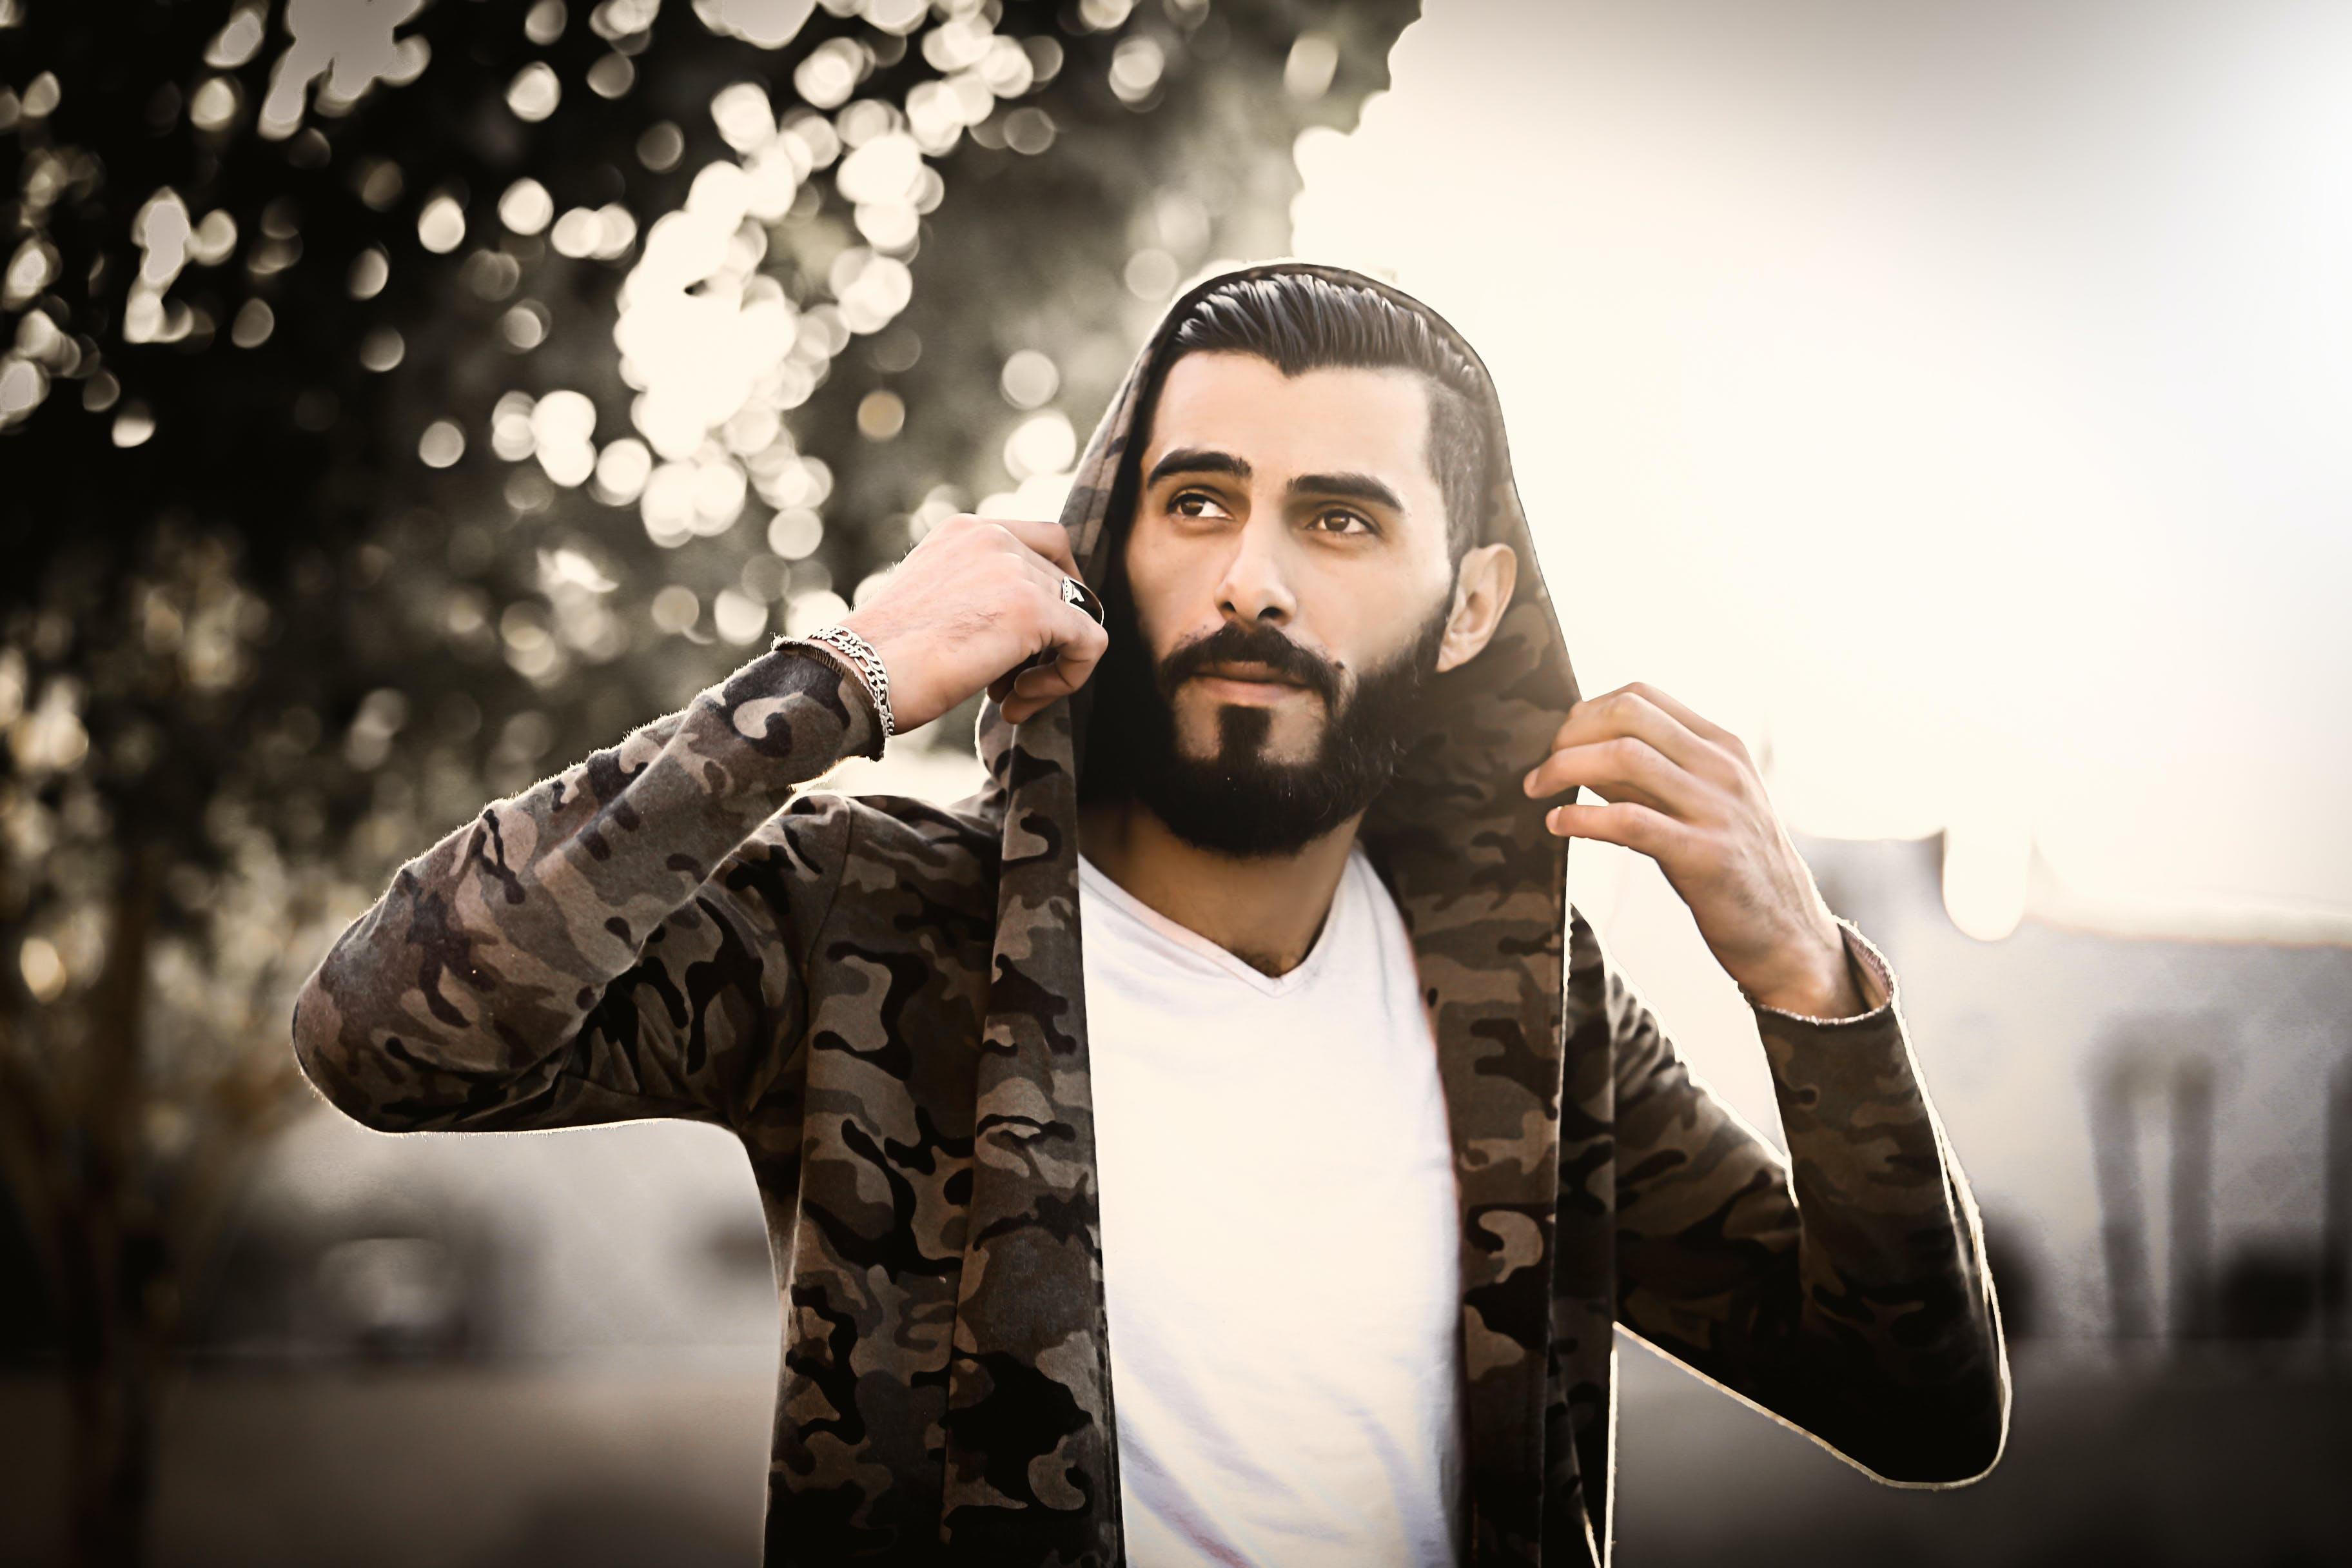 Man Wearing Camouflage Hoodie and White Shirt